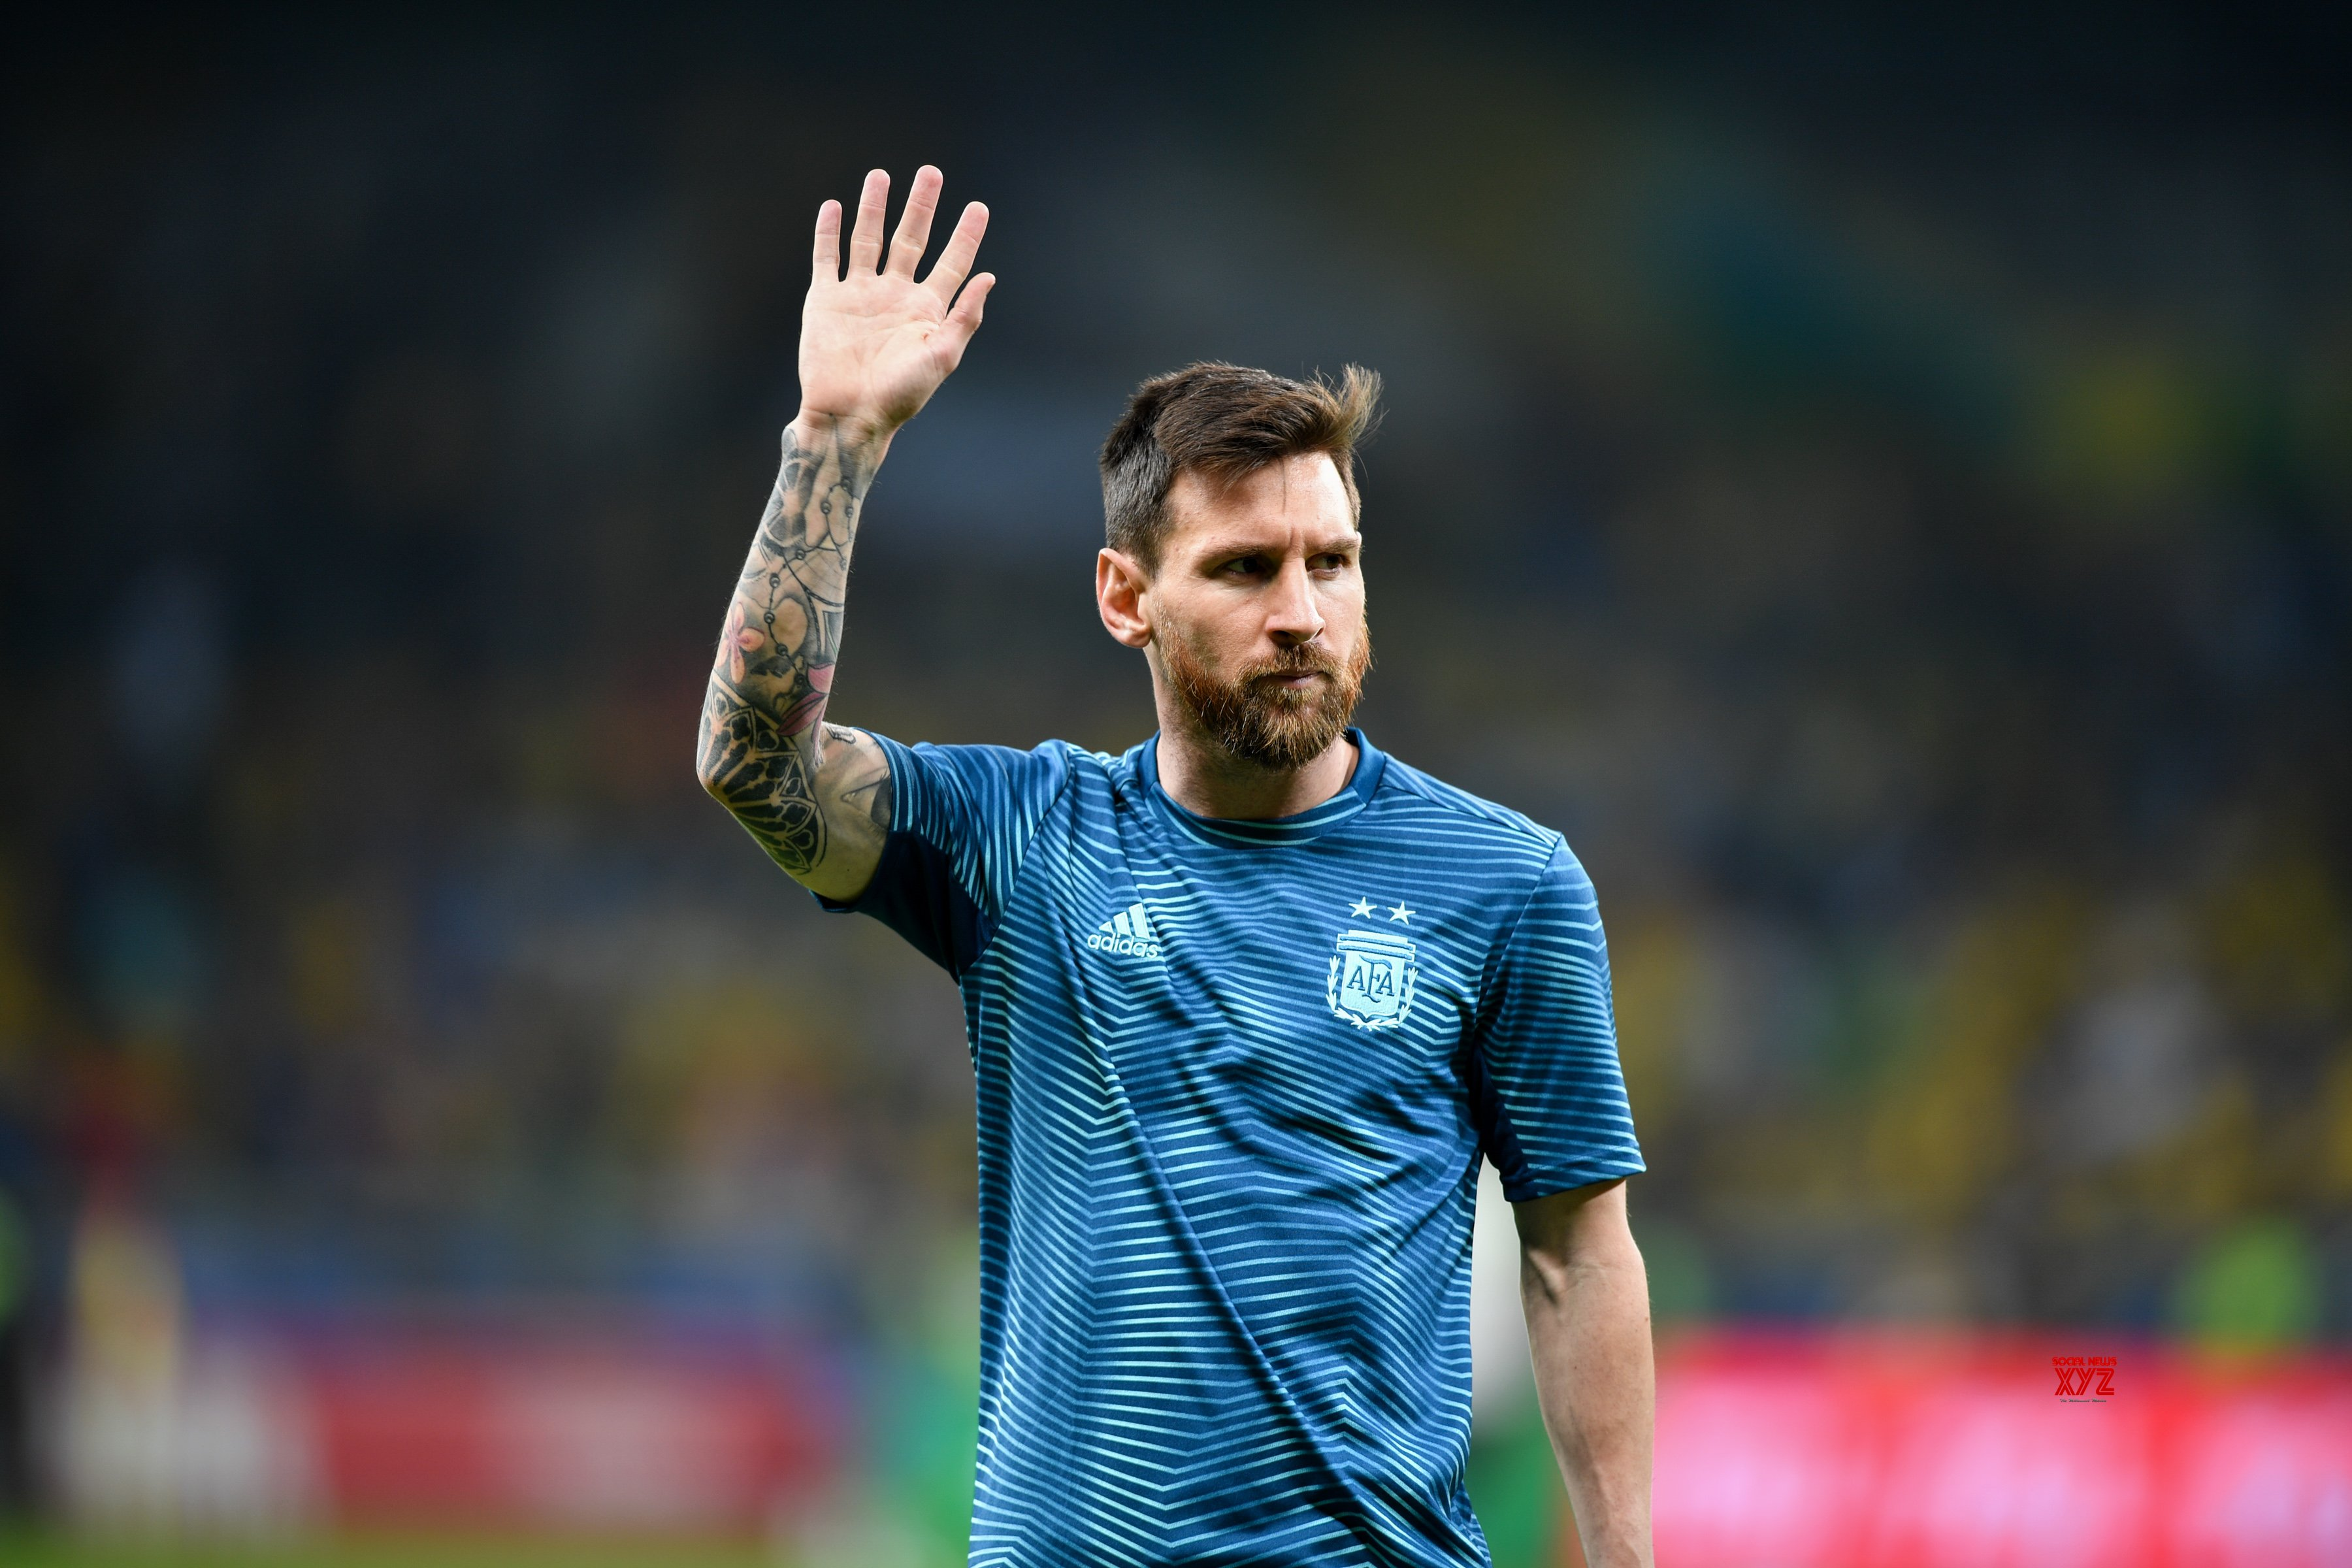 We'll see at what level we are once play restarts: Messi